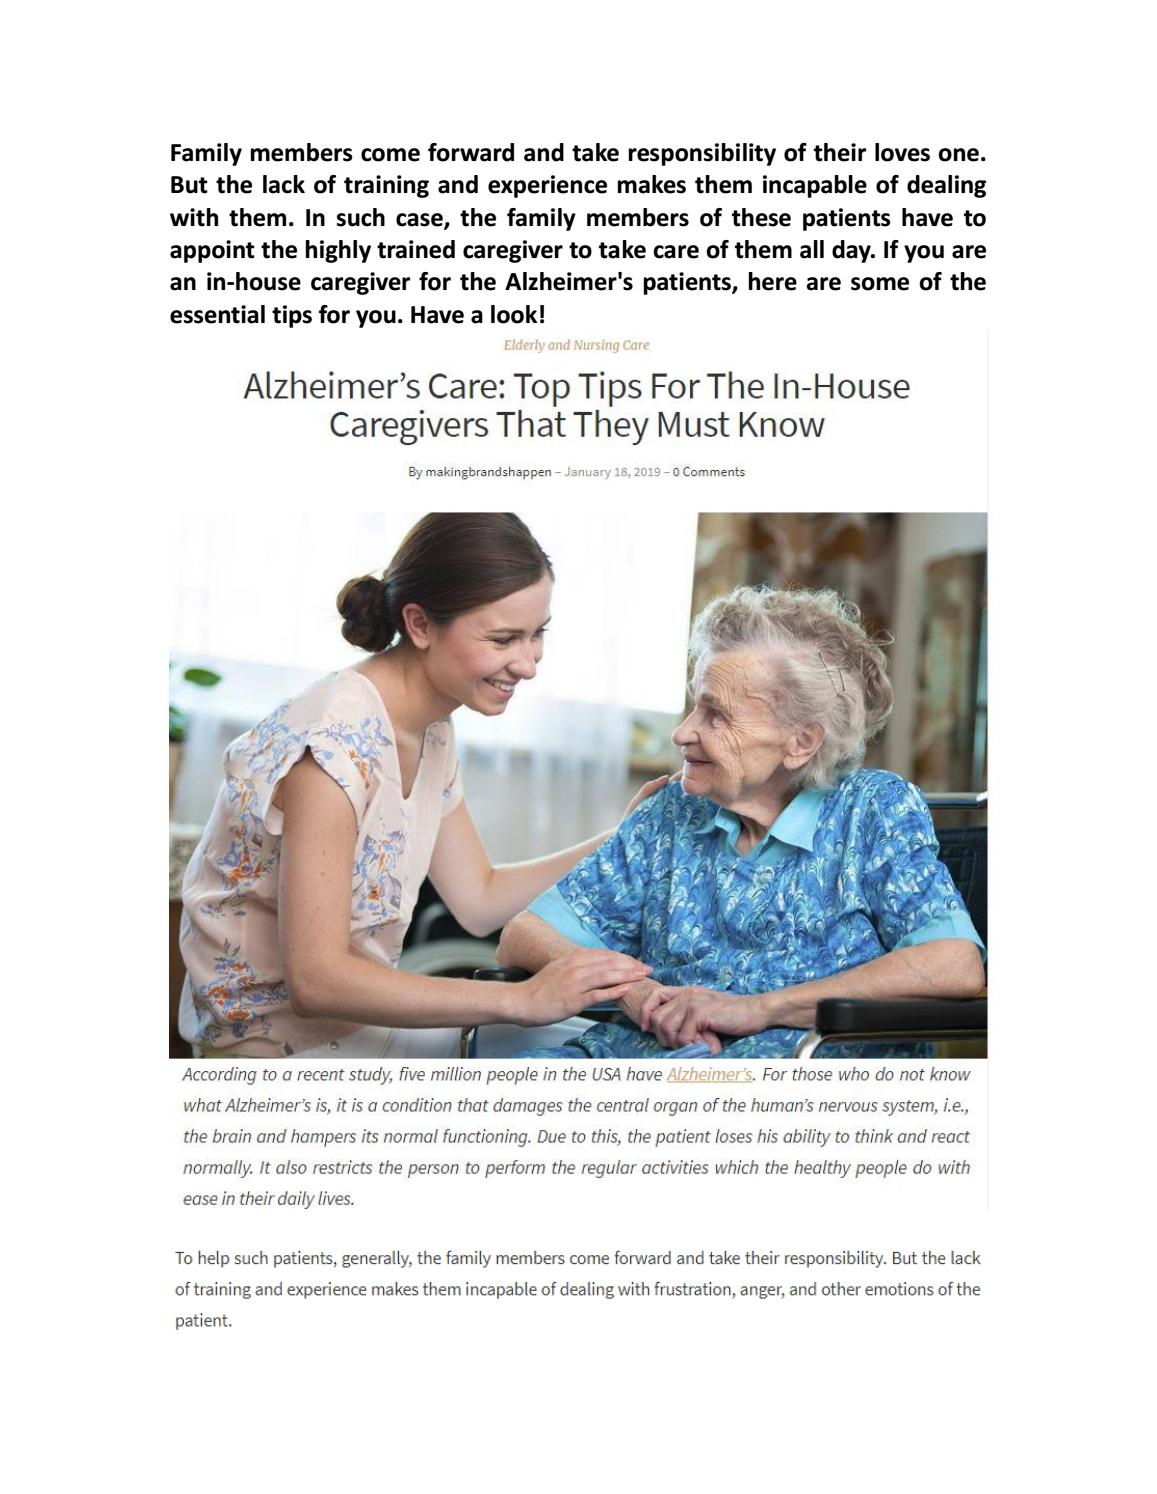 Alzheimer's Care: Top Tips For The In-House Caregivers That They